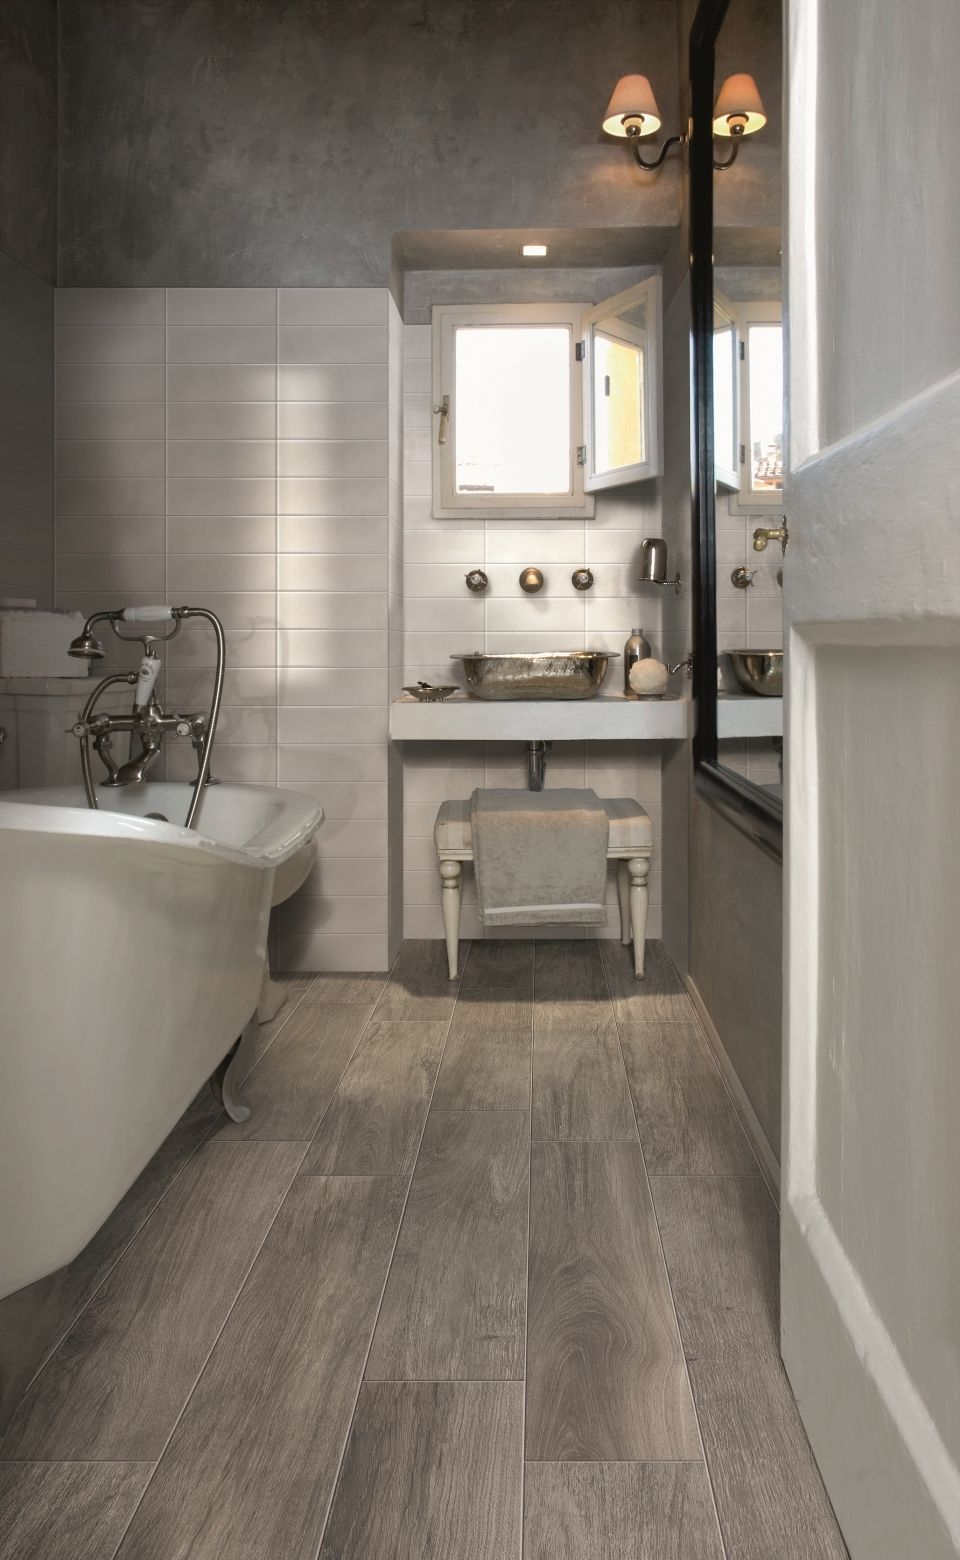 Charmant Lux Wood | Wood Look Porcelain Tile | Architectural Ceramics